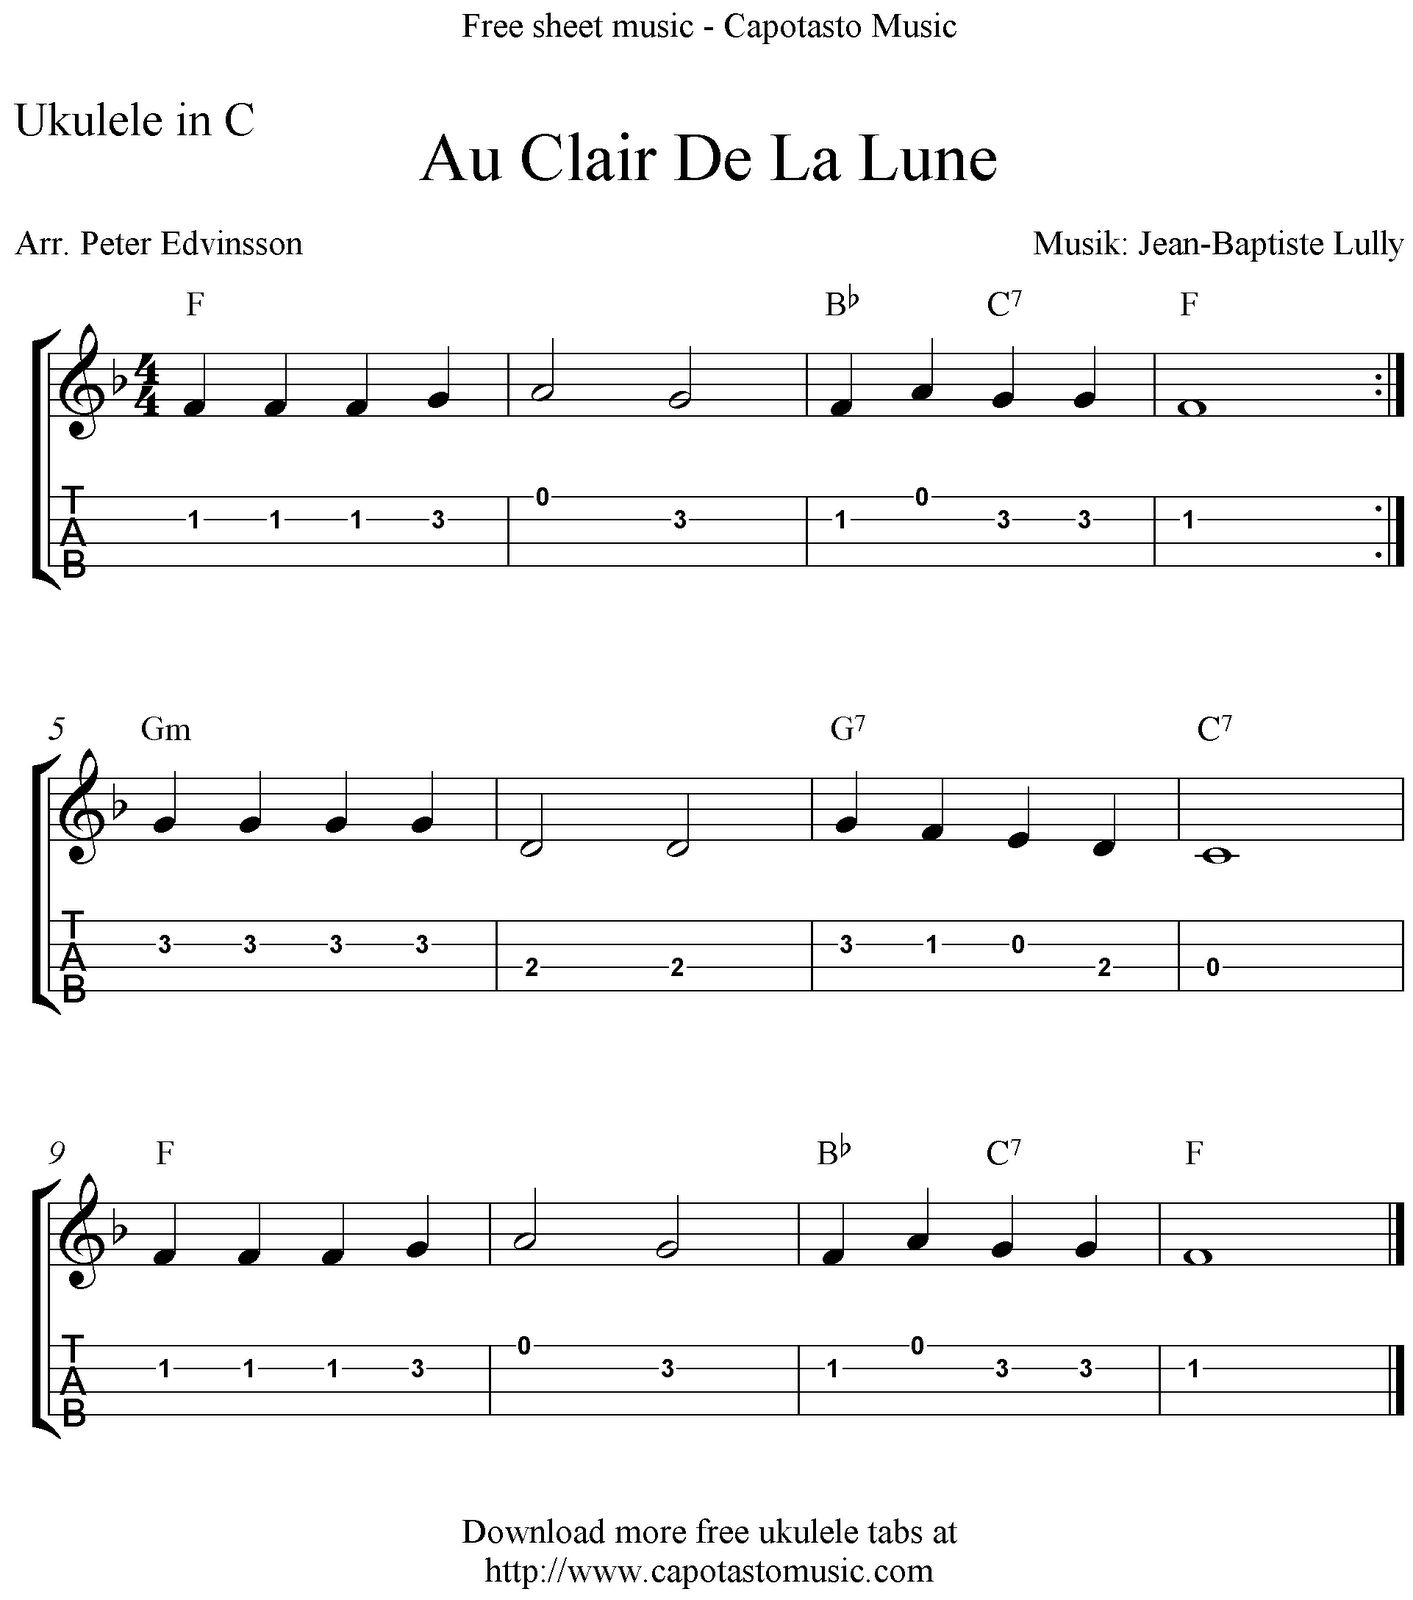 Donna Klinger Baker reviewed Sheet Music Plus — 5 star July 28 · I placed an order on July 24 and when I still had not received an email confirmation of the order, I looked at the website in my account/5().